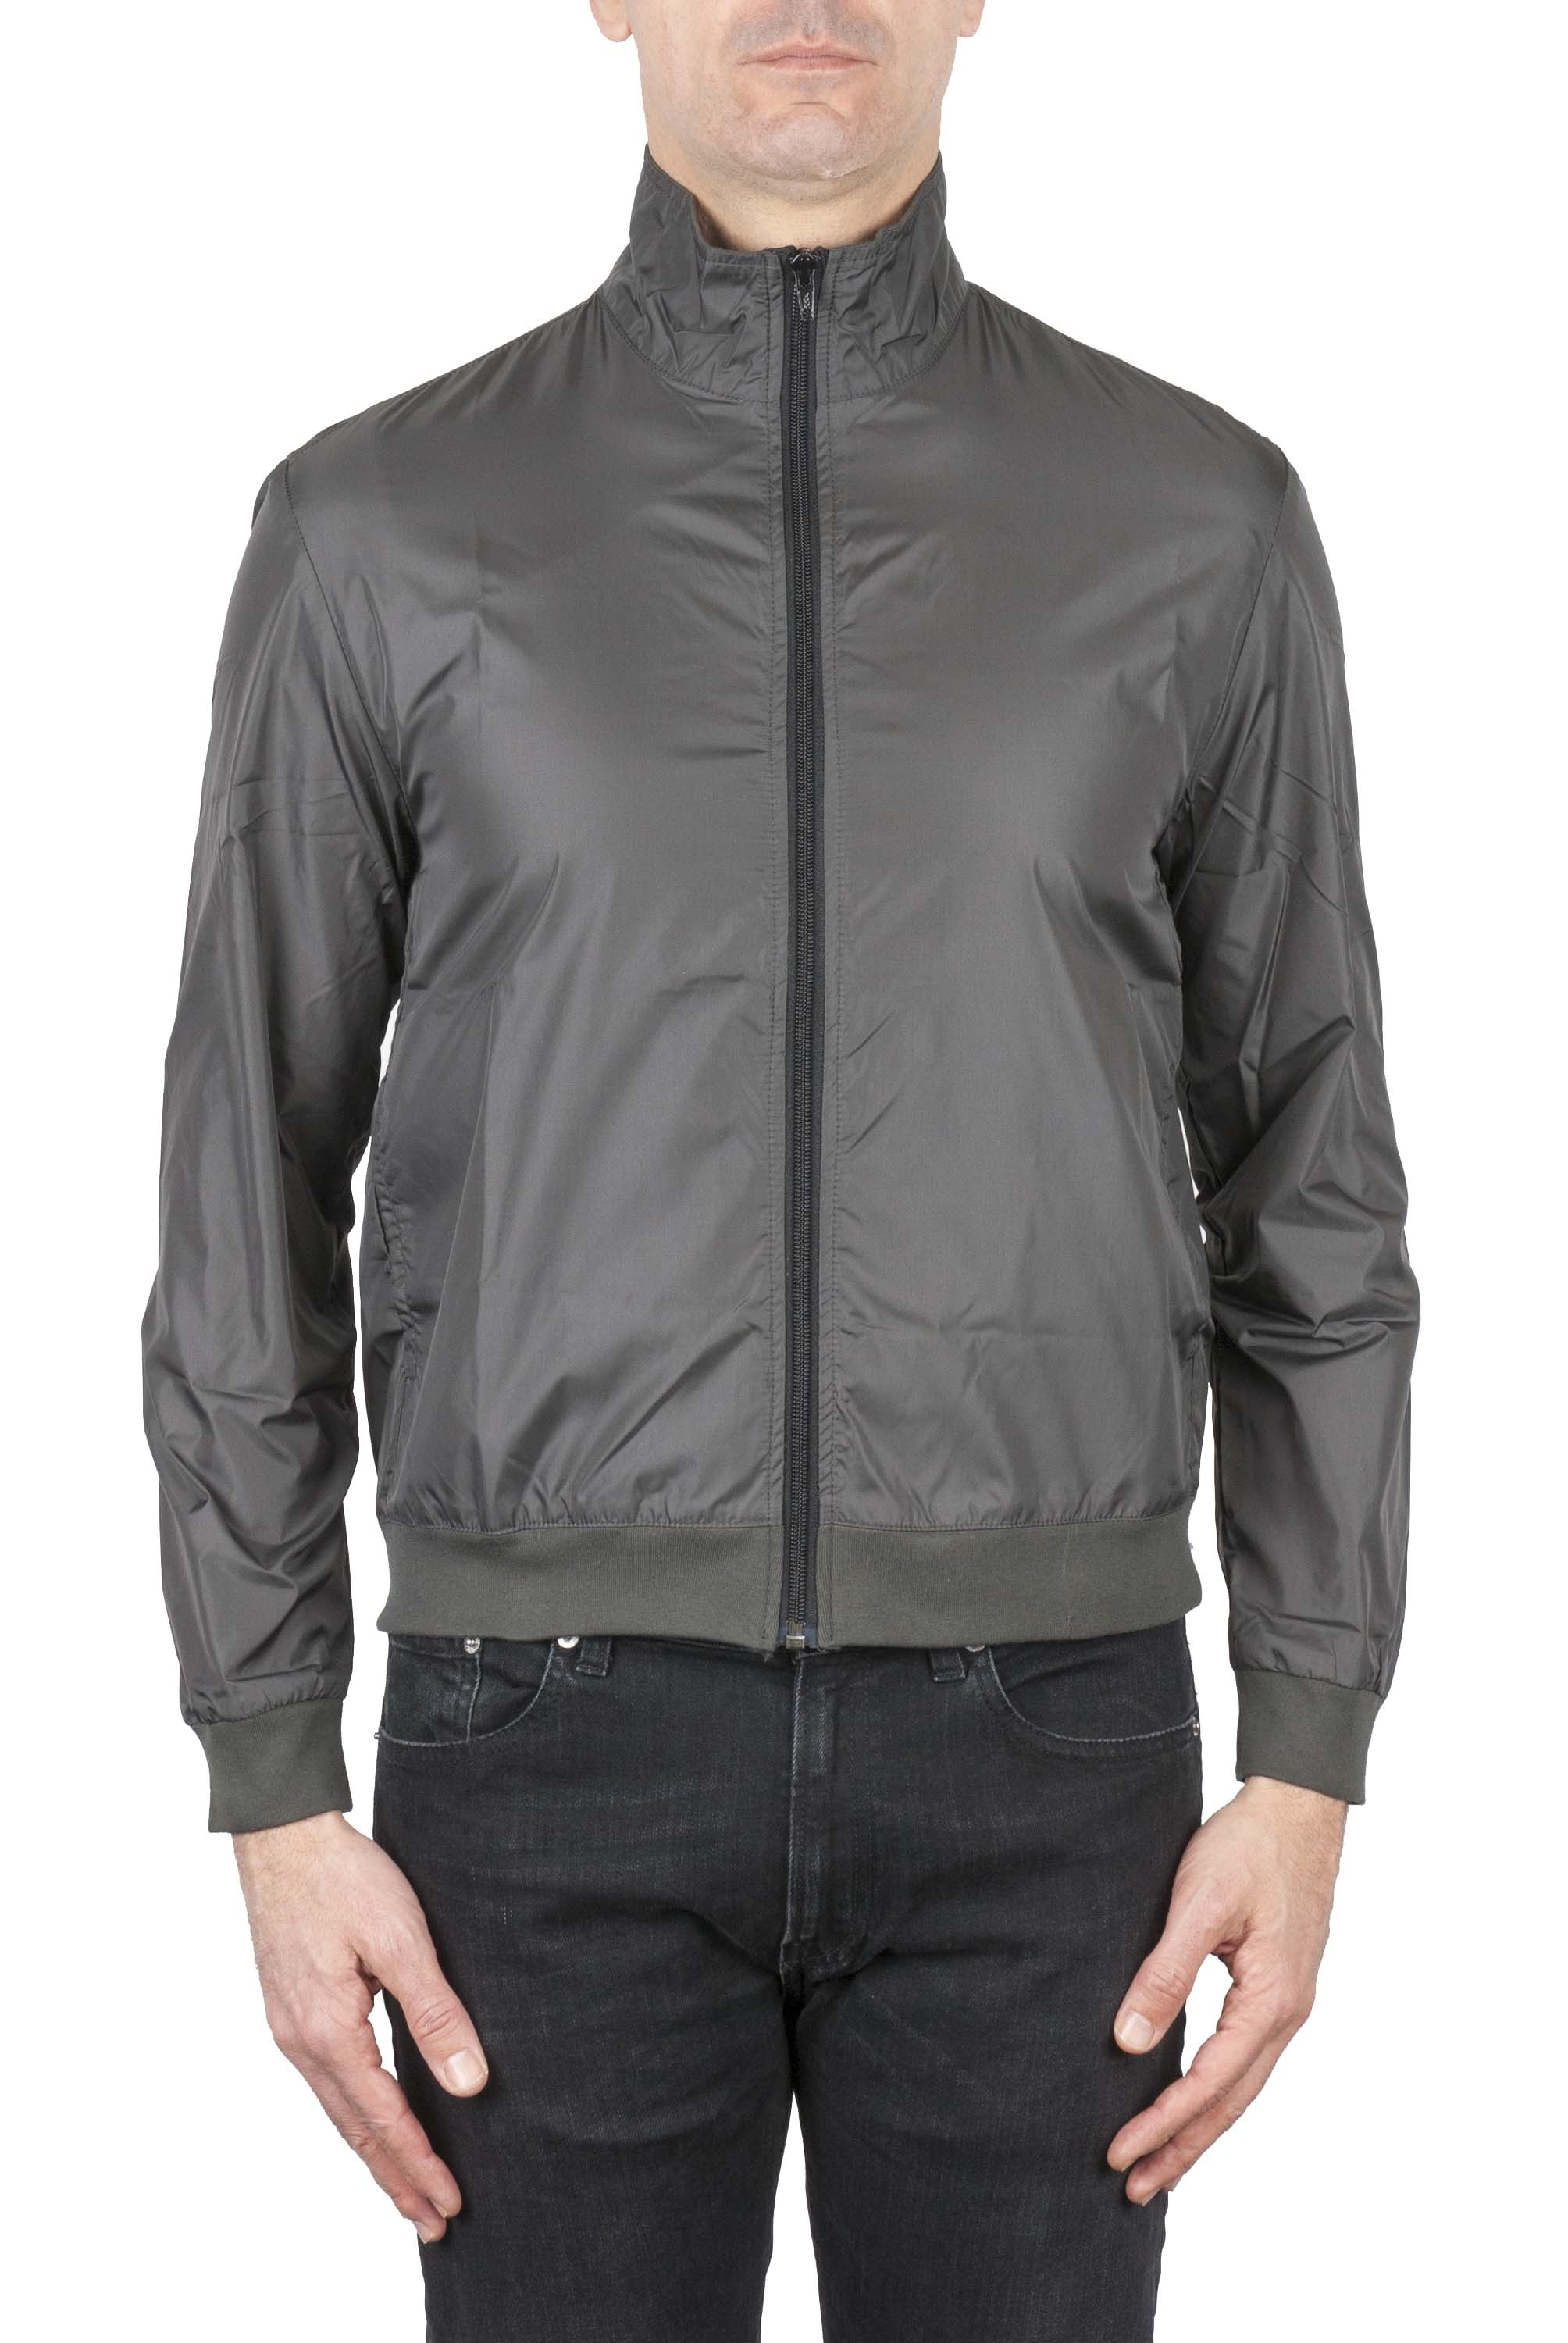 SBU 01110 Veste coupe-vent hi-tech 01